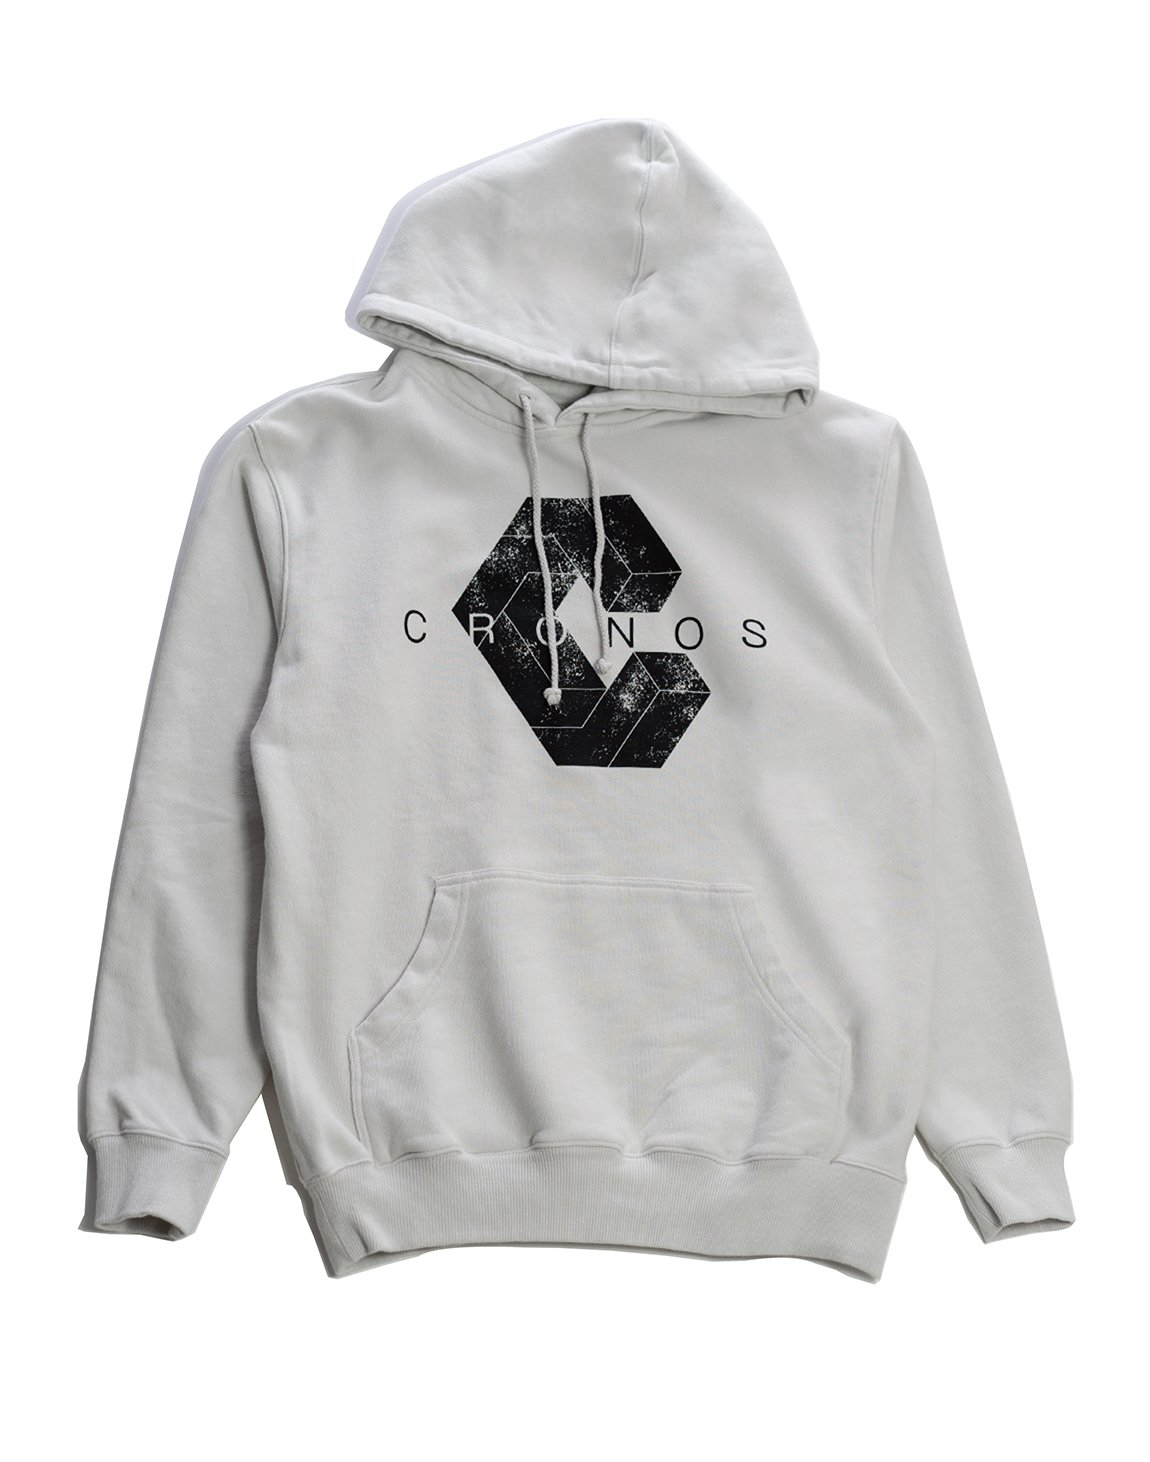 <img class='new_mark_img1' src='https://img.shop-pro.jp/img/new/icons1.gif' style='border:none;display:inline;margin:0px;padding:0px;width:auto;' />New Logo Pull Over Parka. White